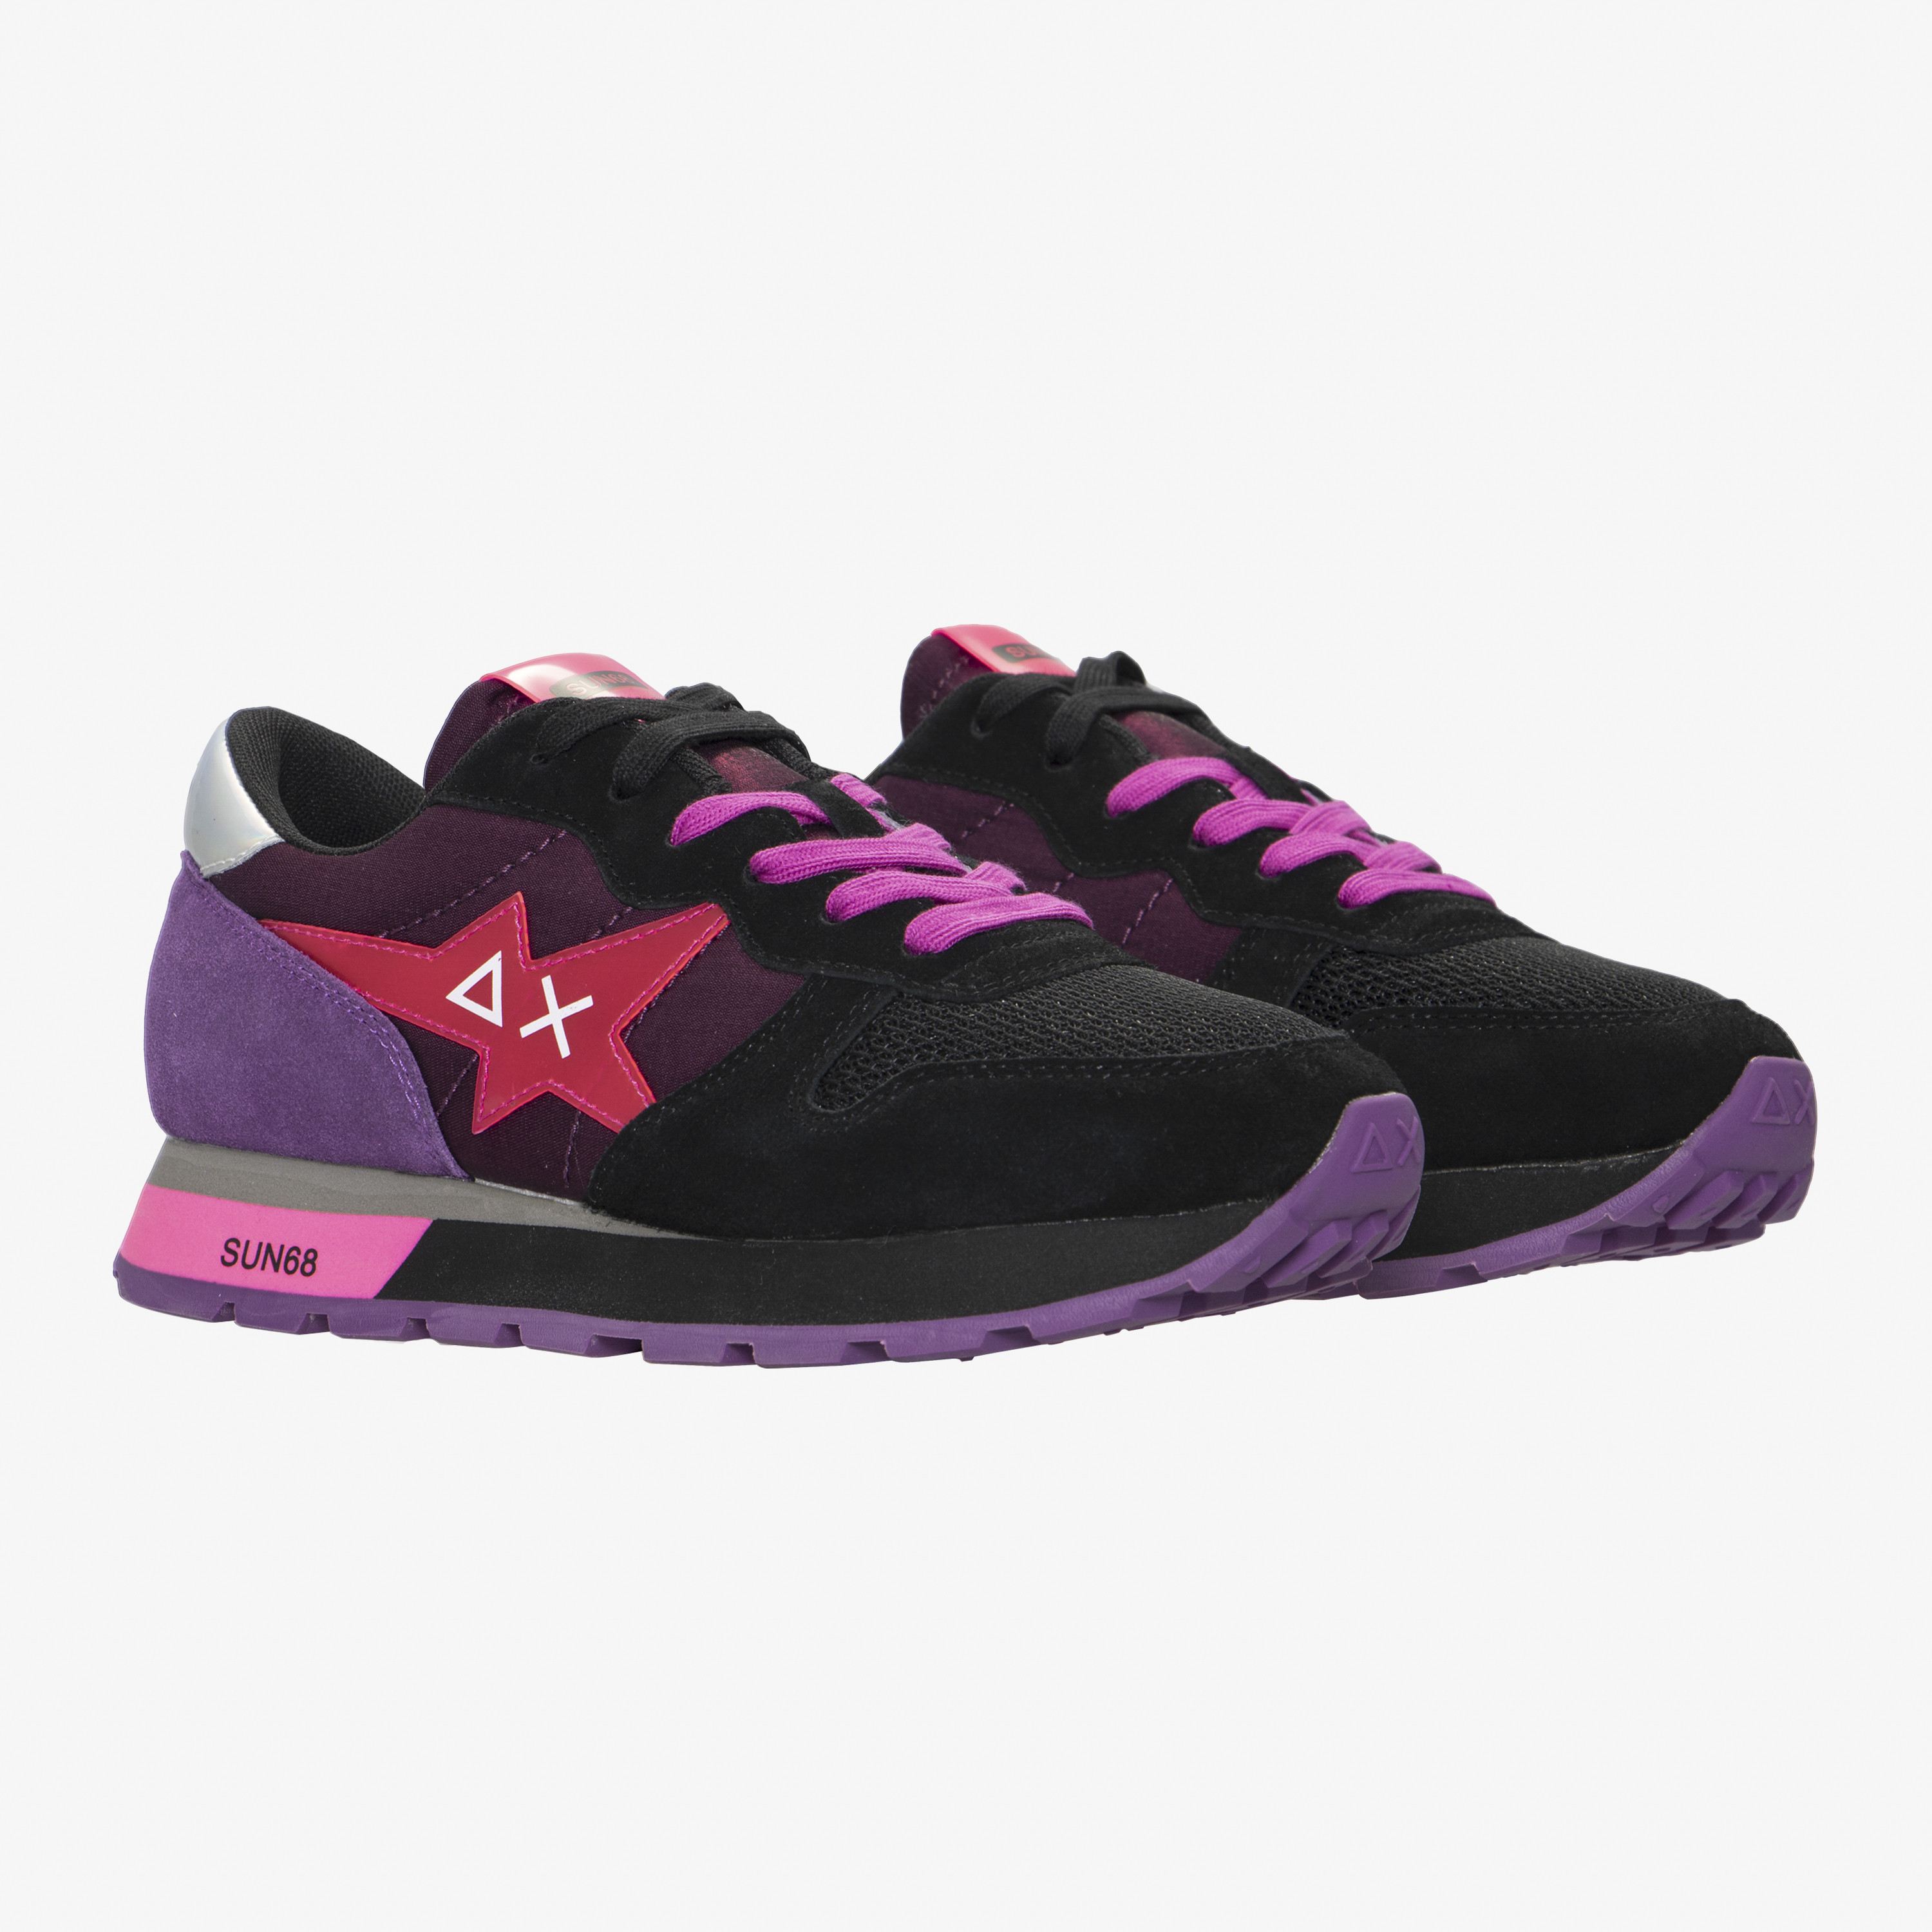 ALLY STAR GIRL TRASPARENT BLACK/FUXIA